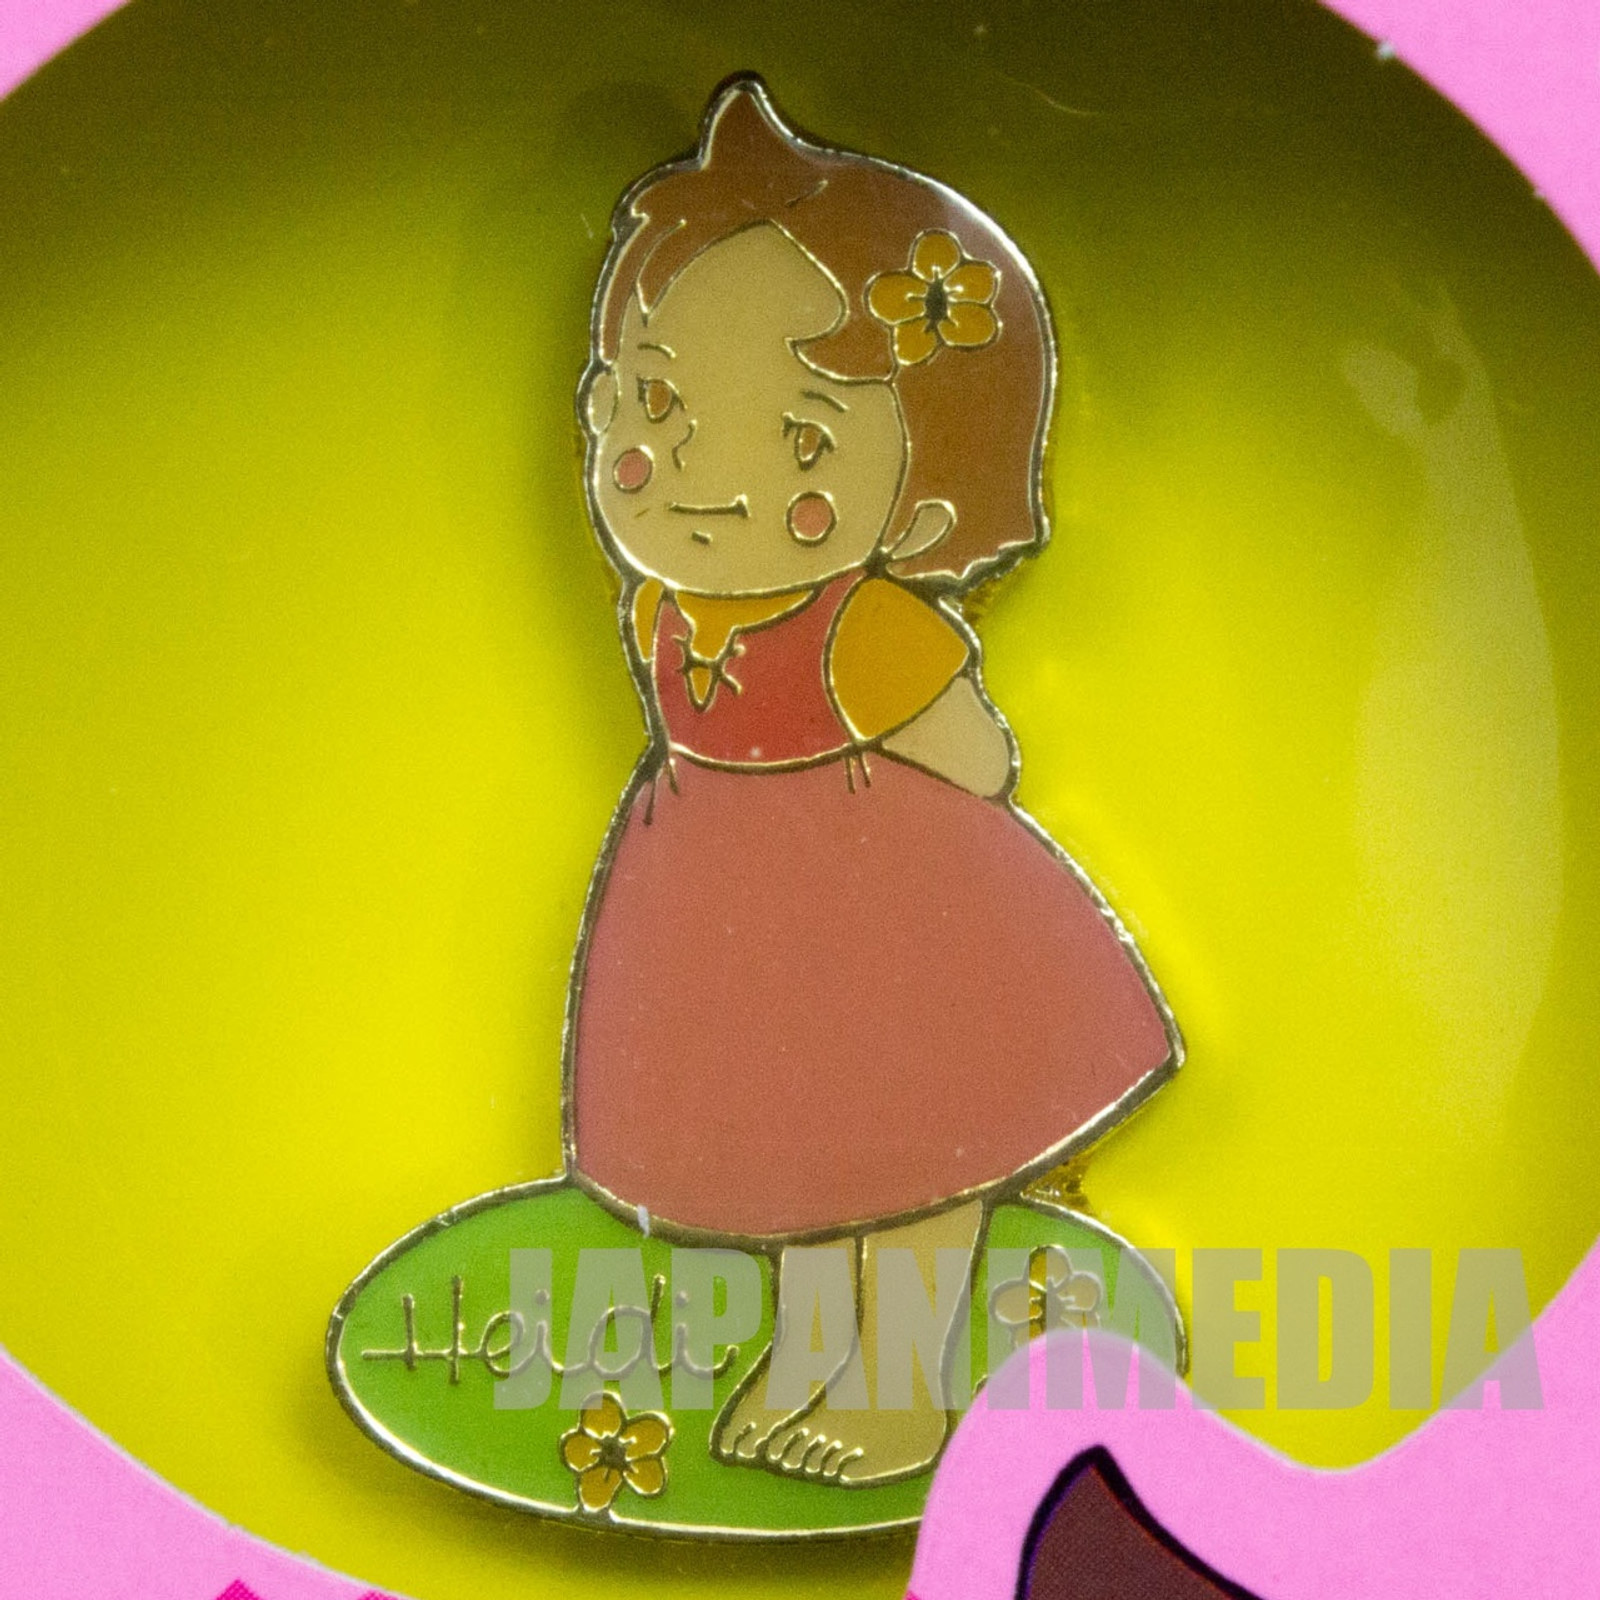 Heidi Girl of the Alps Cute Pins Kabaya JAPAN ANIME #10